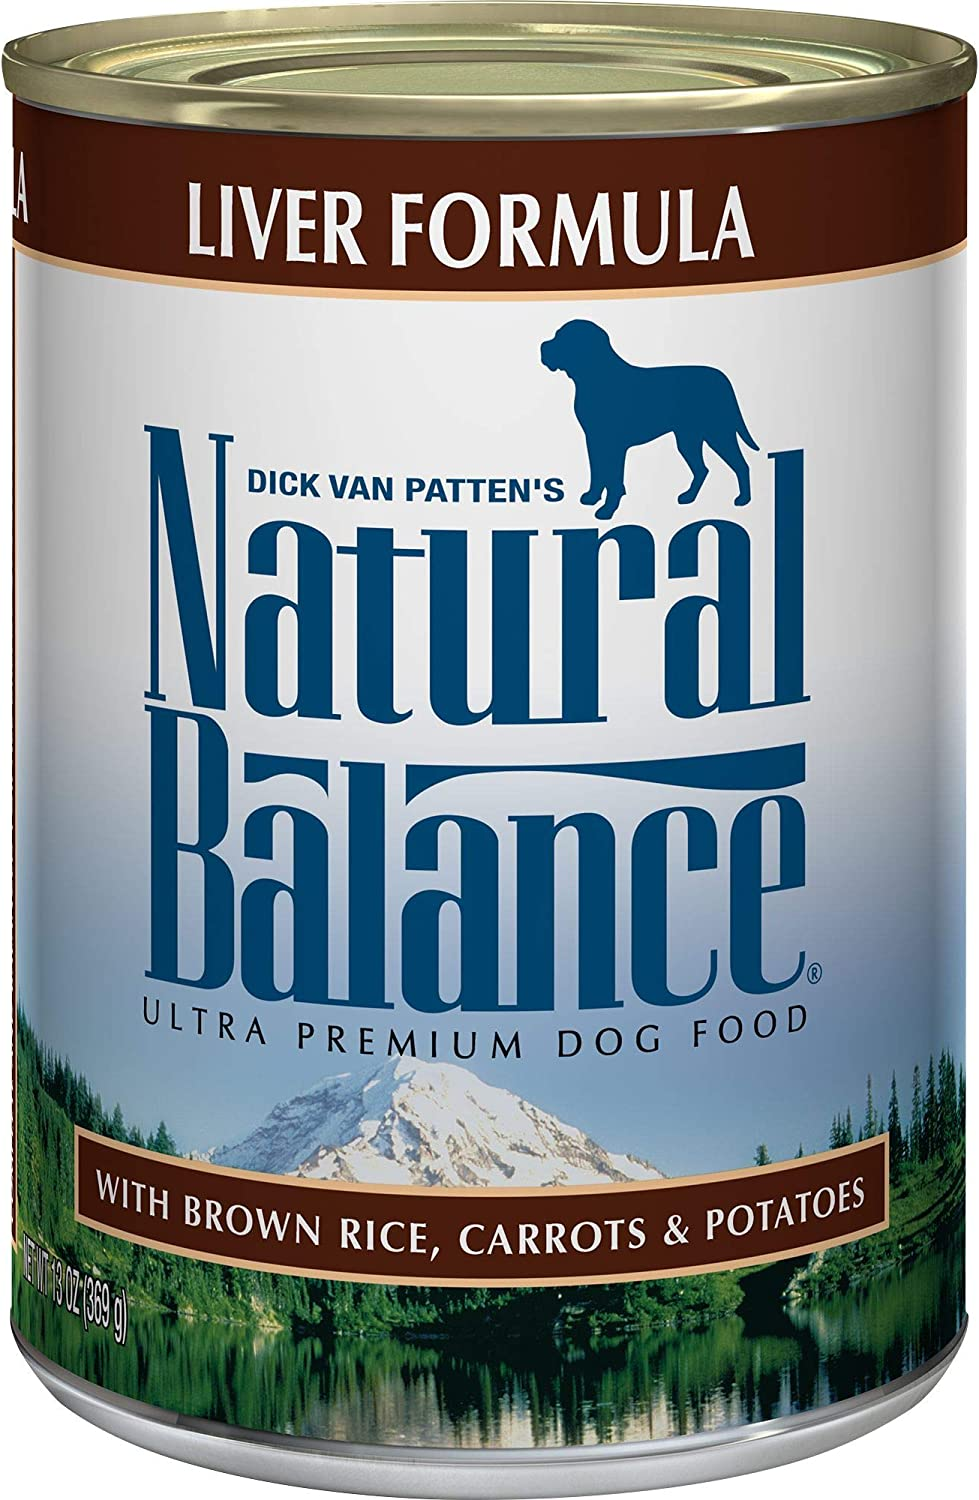 Natural Balance Ultra Premium Wet Dog Food, Liver, Brown Rice, Carrots & Potatoes